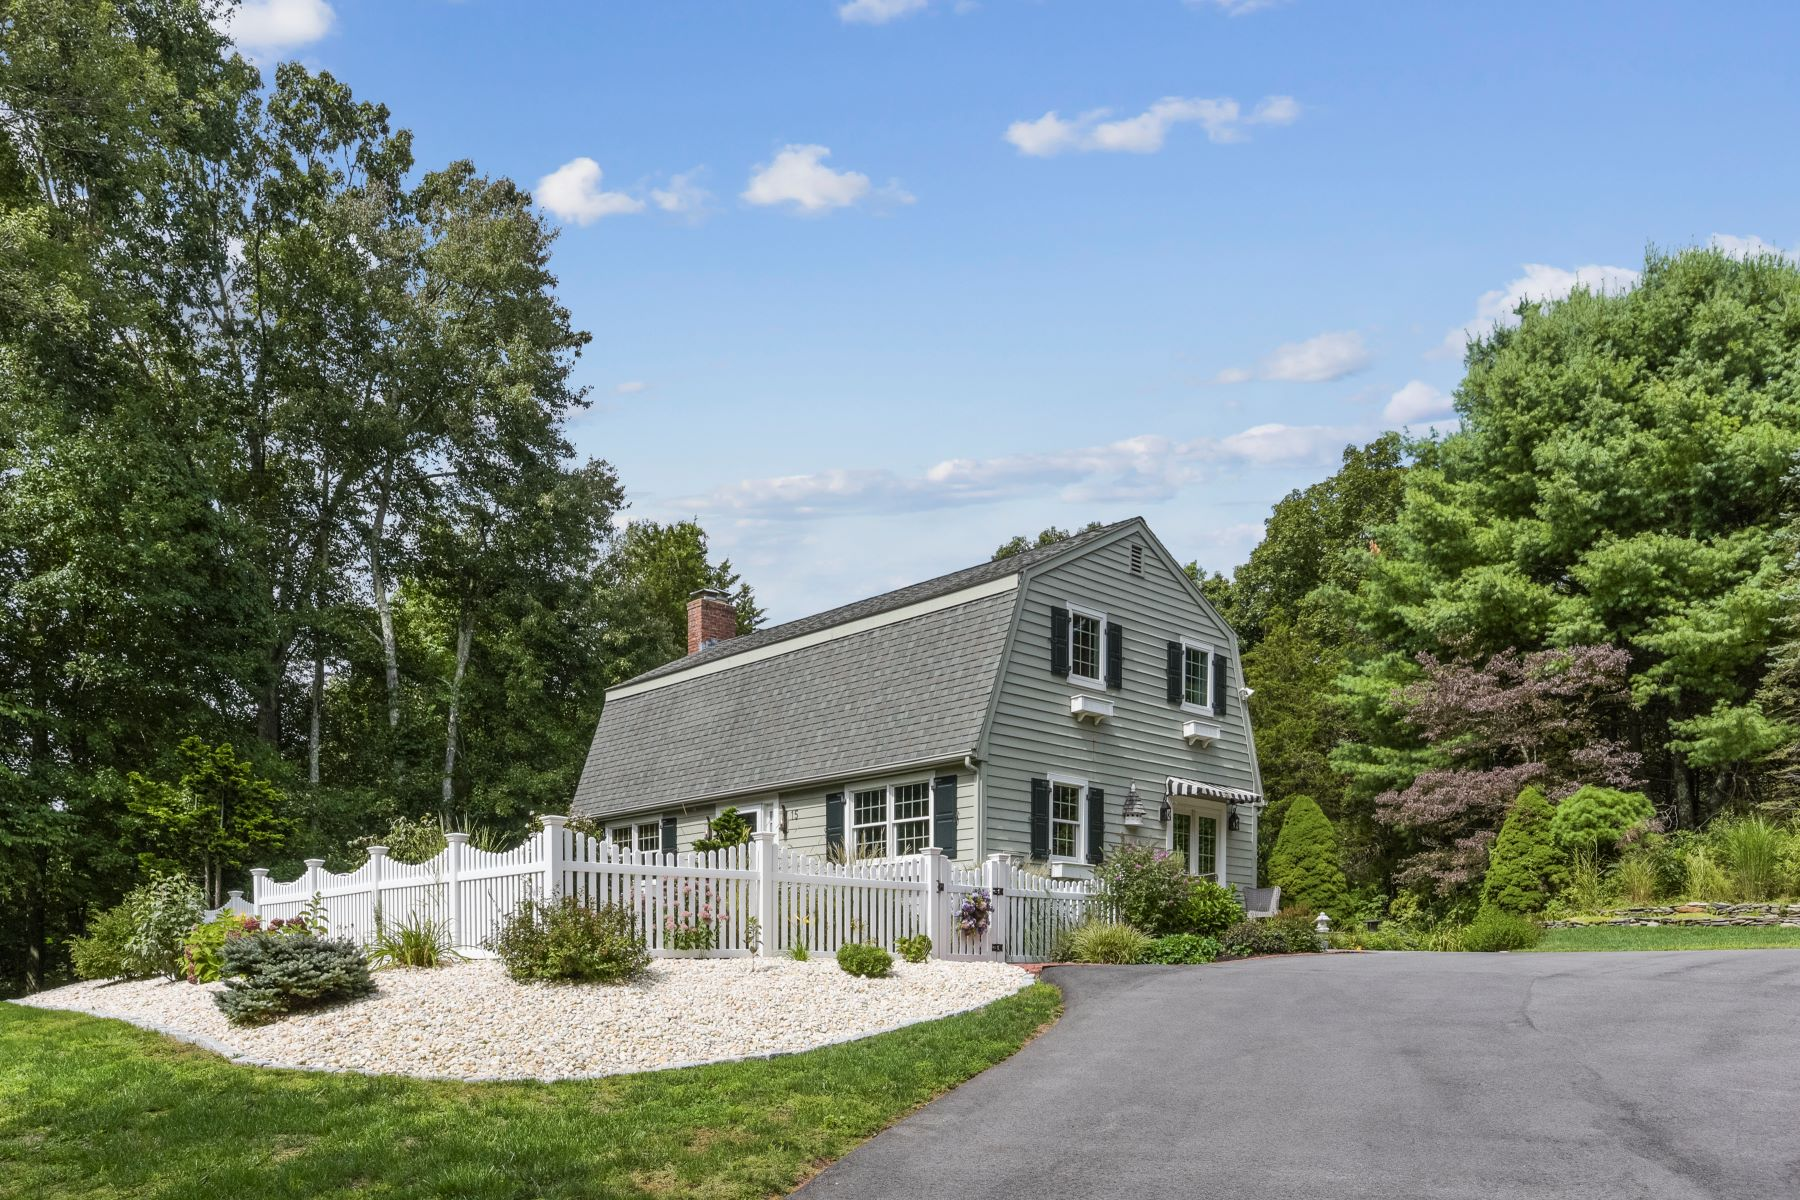 Single Family Homes for Active at This Home is Truly a Gem! 15 Deer Run East Haddam, Connecticut 06423 United States